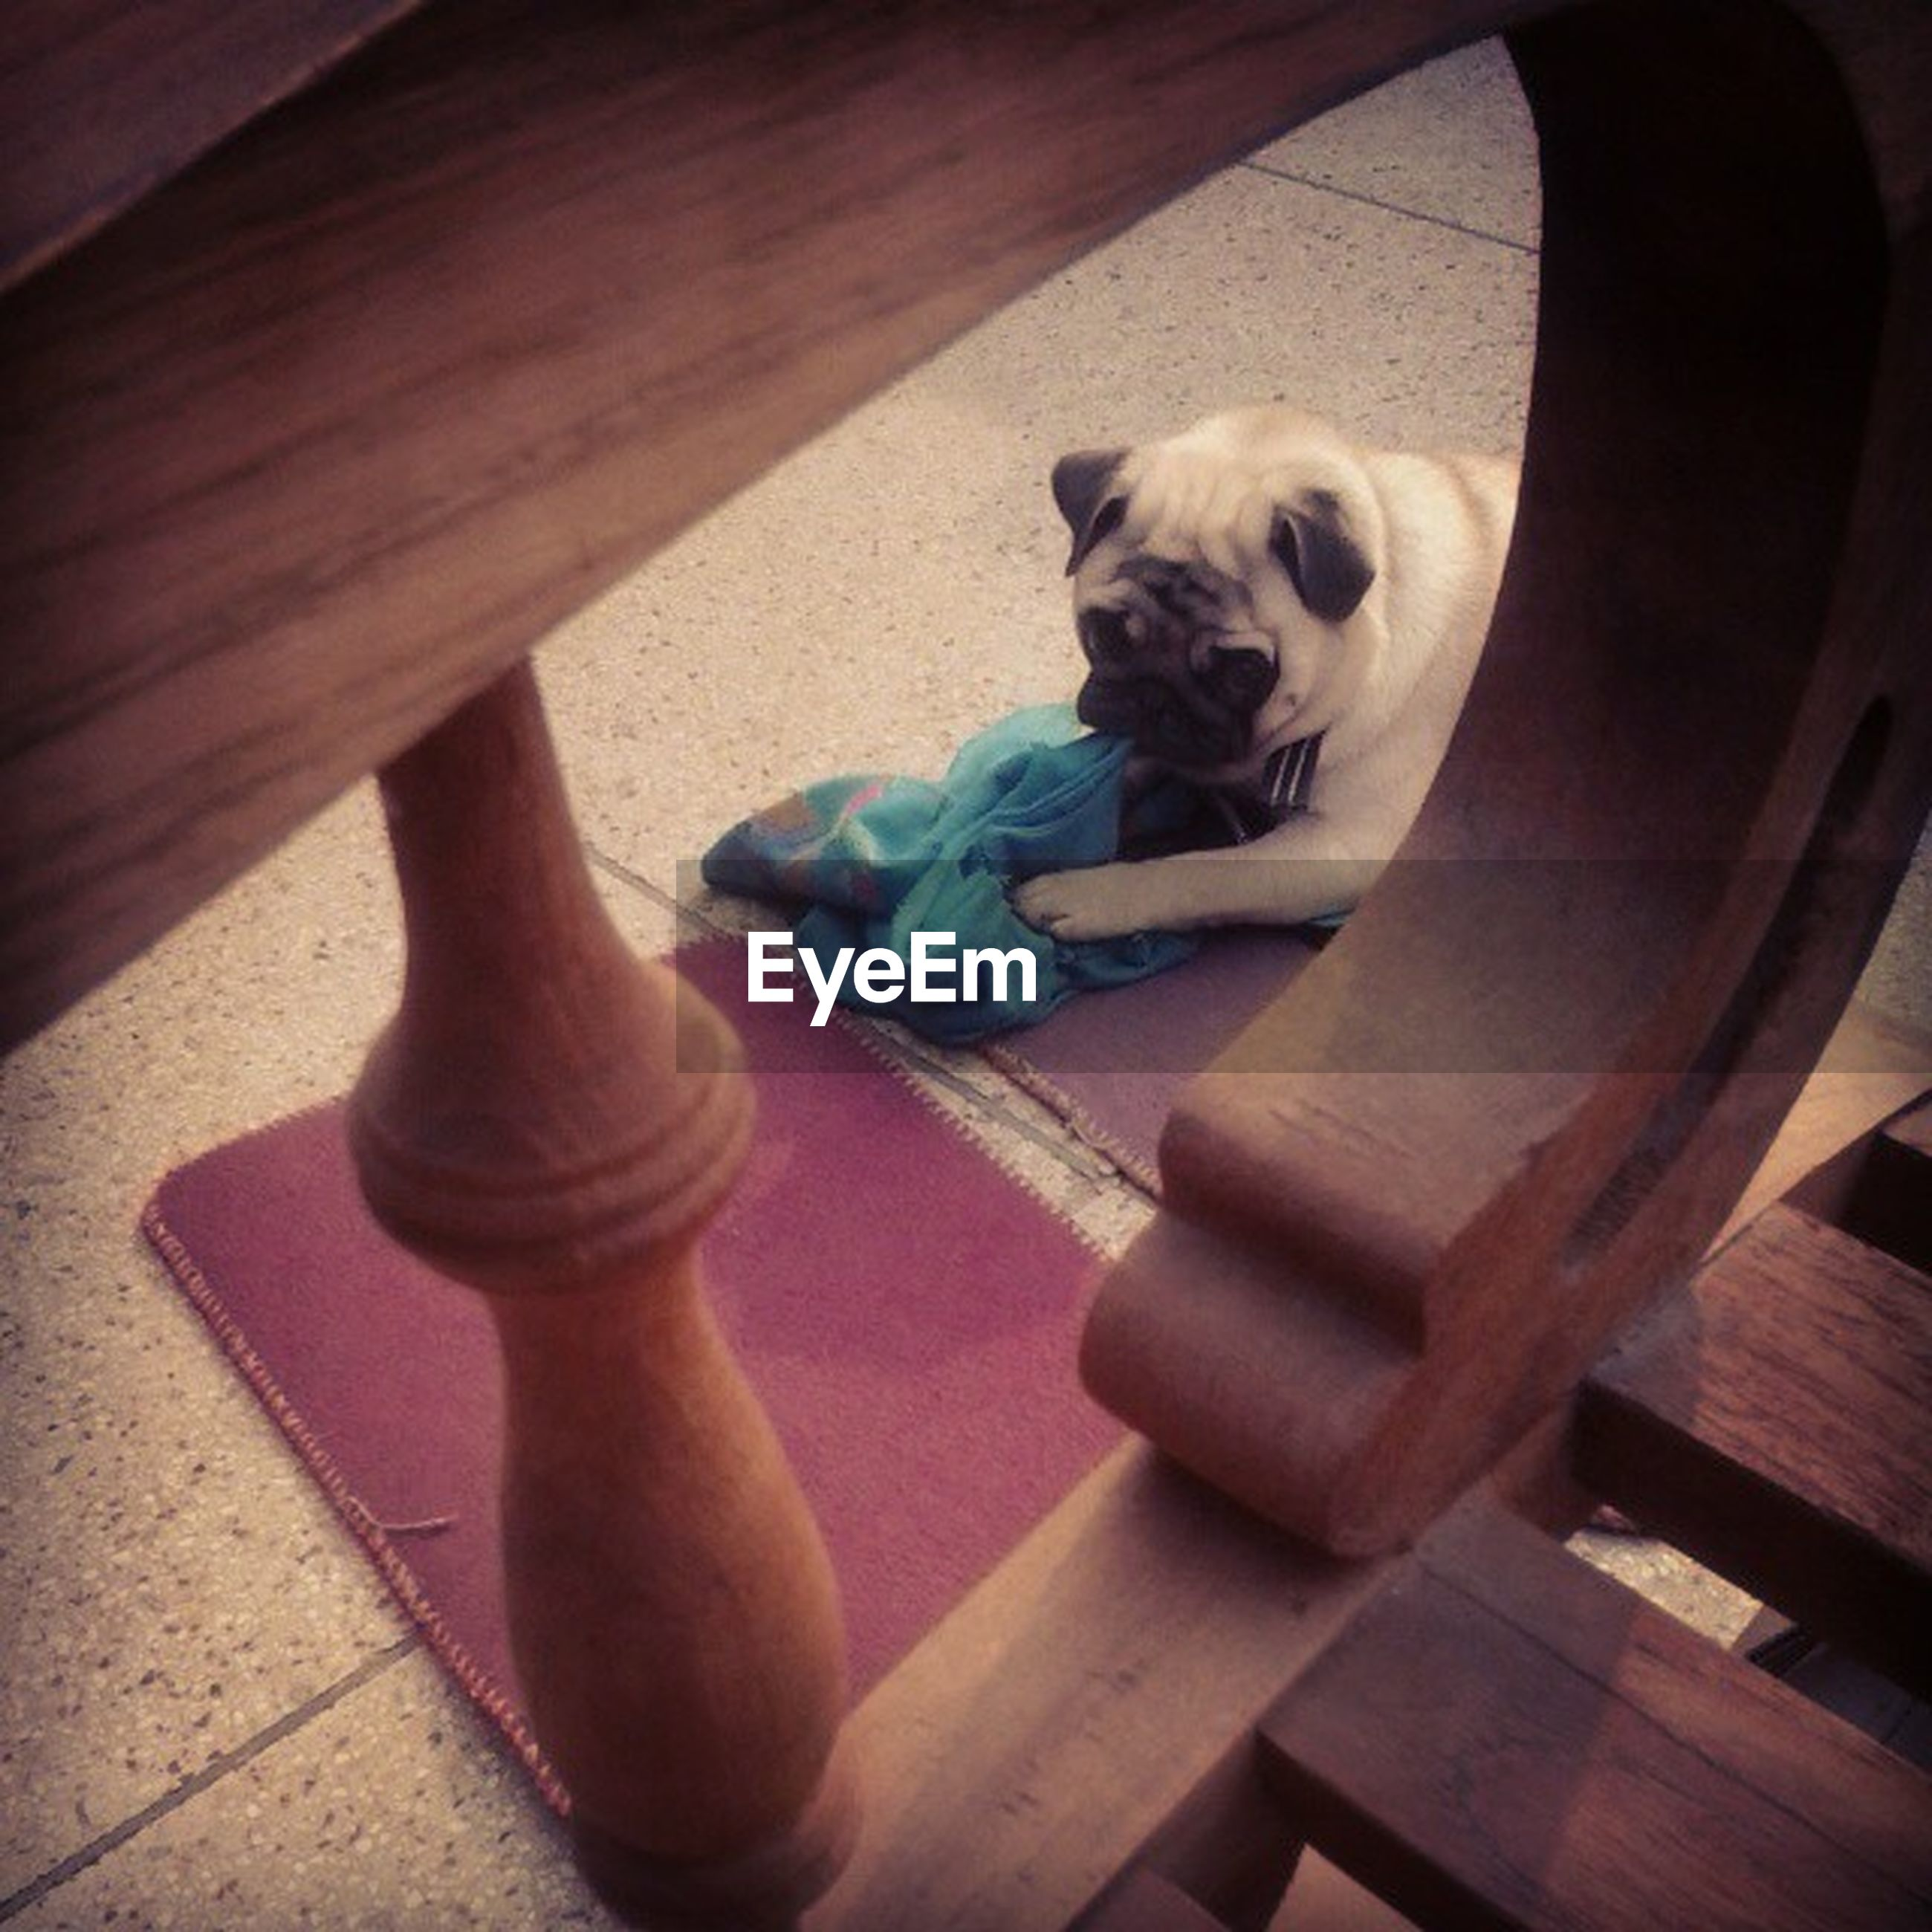 indoors, wood - material, high angle view, pets, dog, domestic animals, one animal, wooden, sitting, animal themes, hardwood floor, mammal, flooring, wood, toy, relaxation, table, full length, day, no people